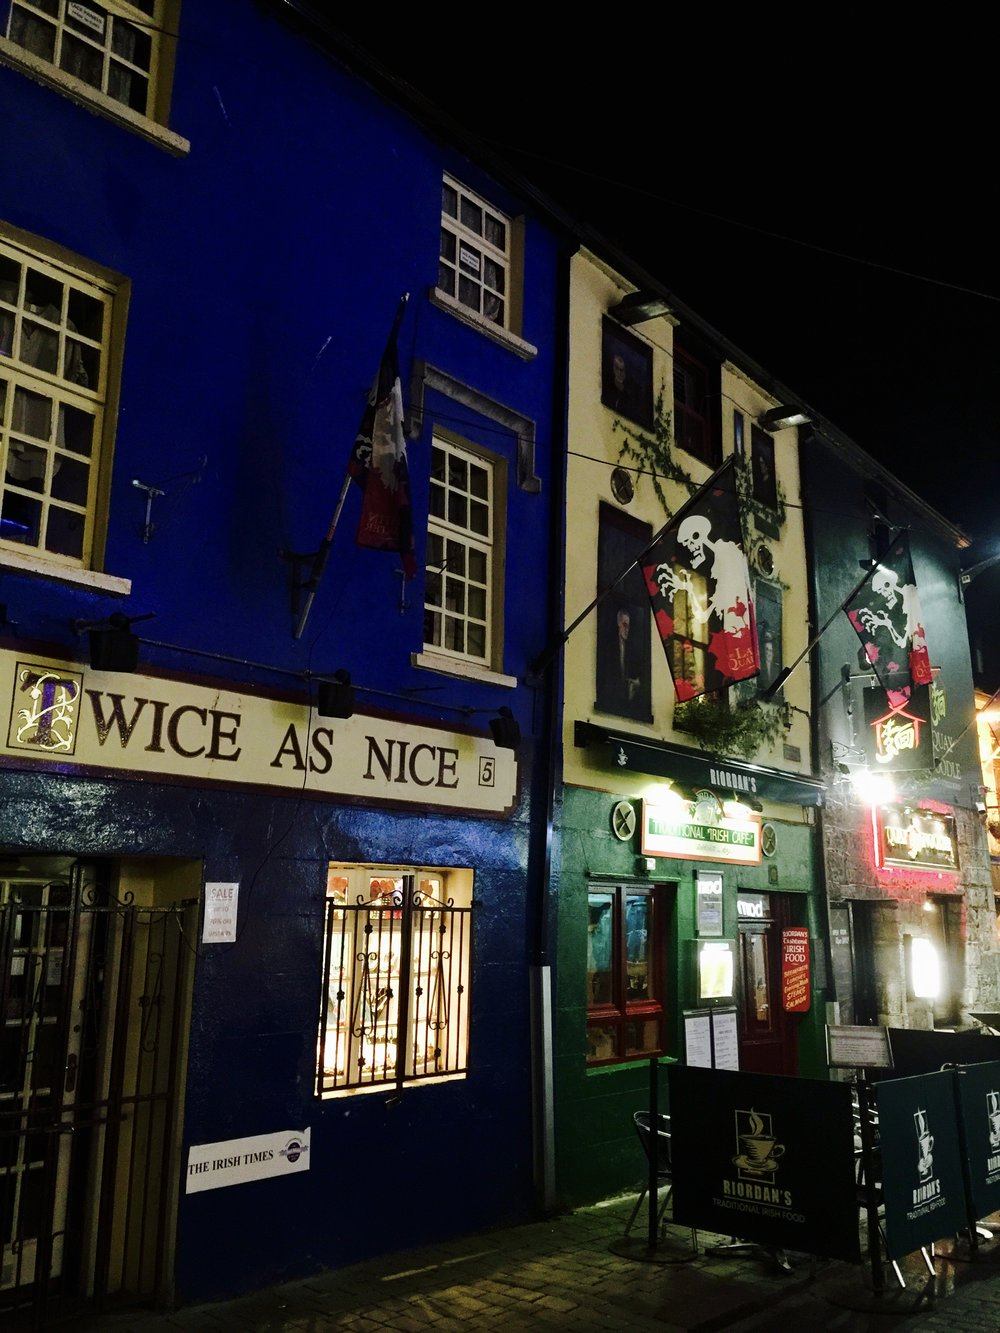 Quay Street in Galway Ireland